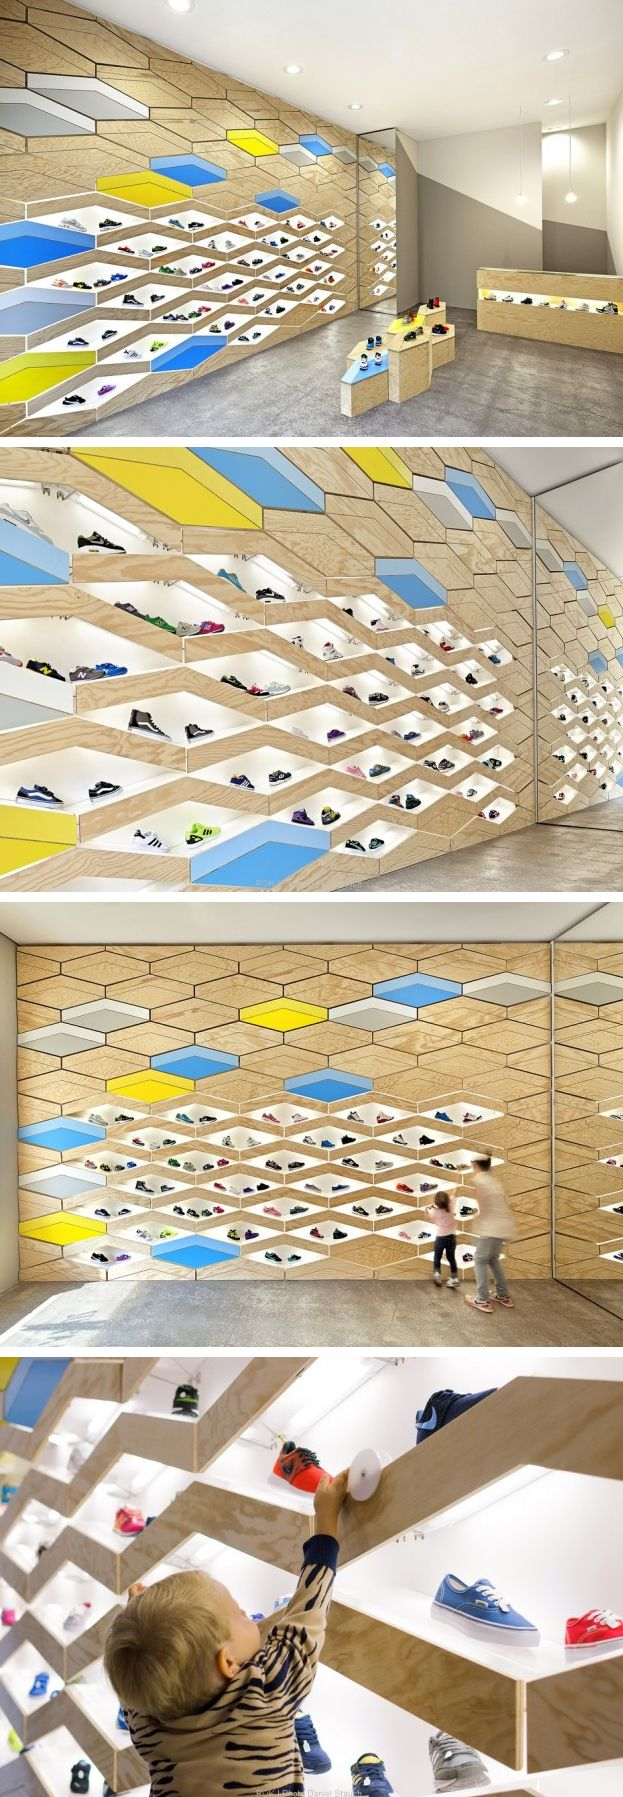 Suppakids Sneaker Boutique by ROK // Stuttgart, Germany